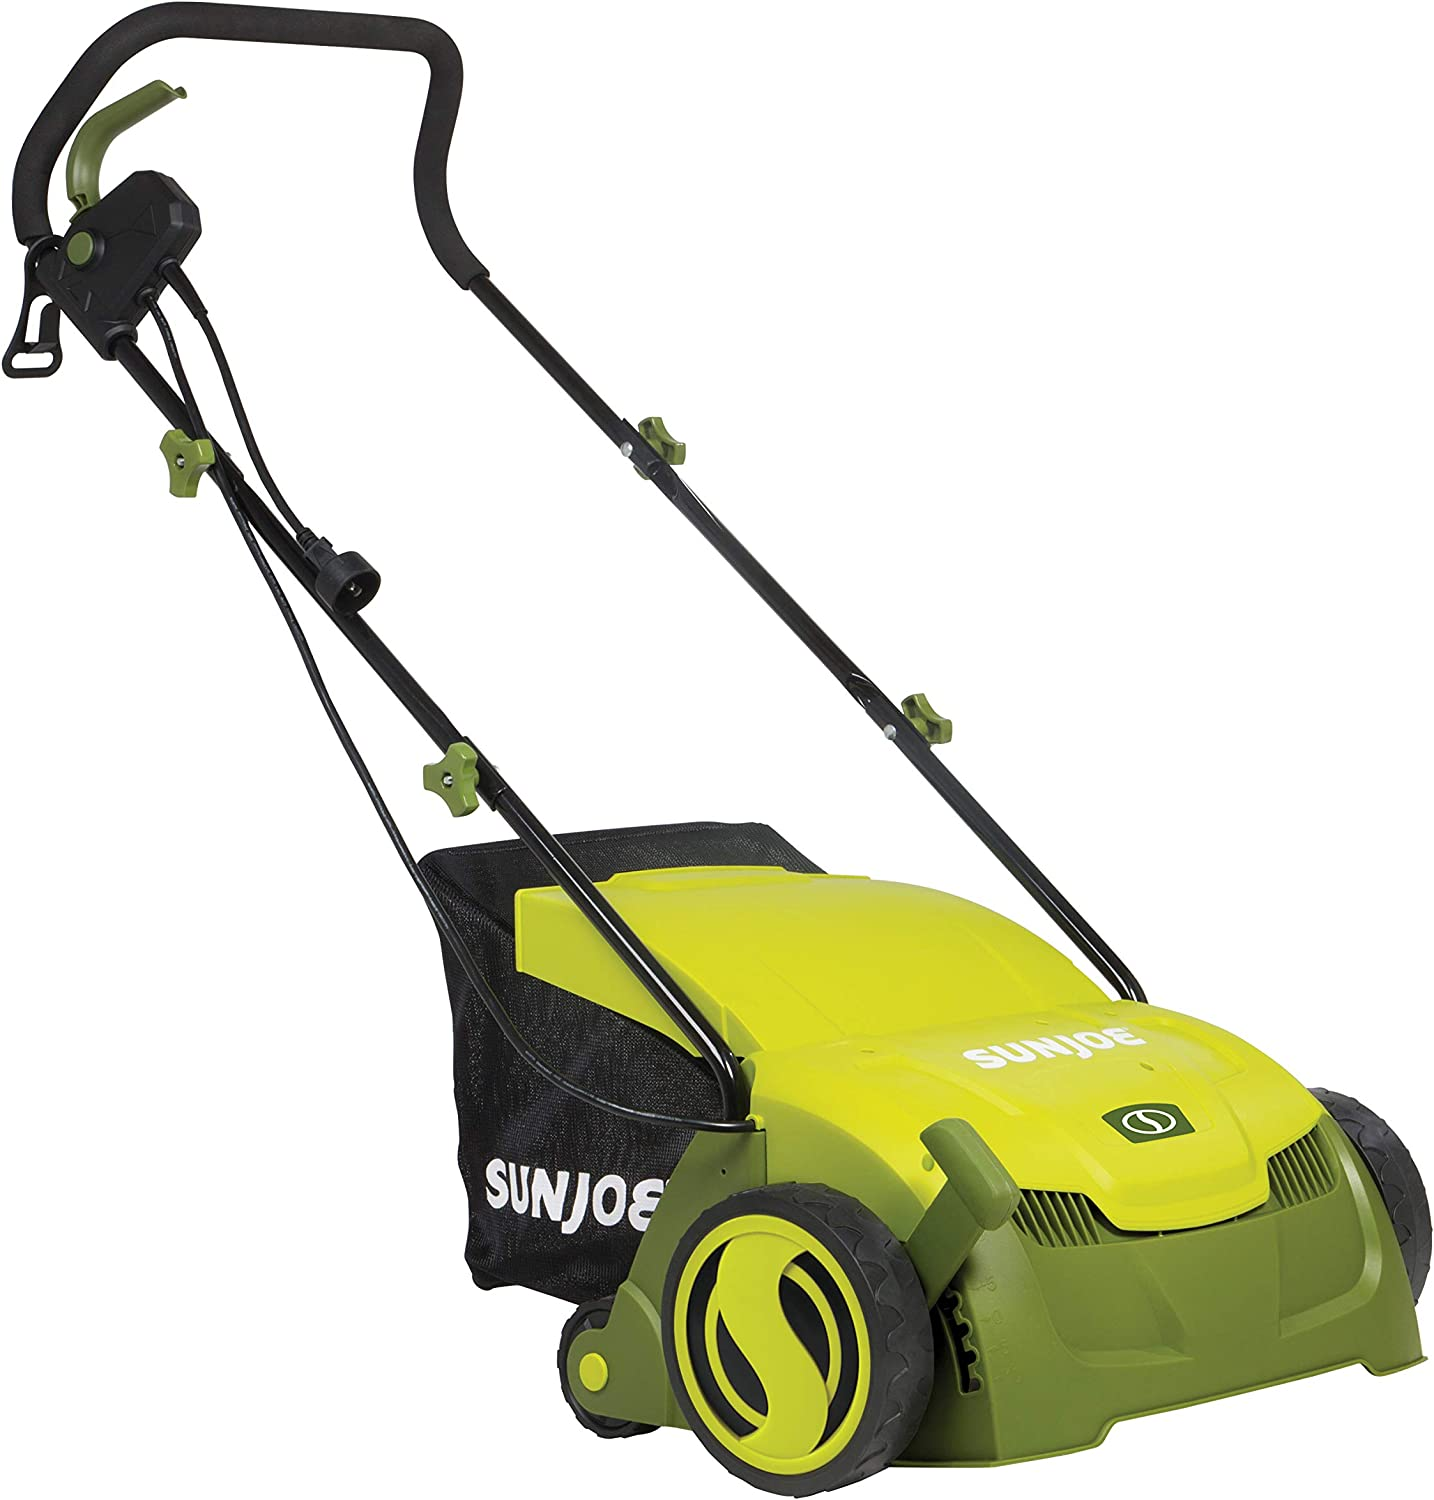 Sun Joe AJ801E 13 in. 12 Amp Electric Scarifier Lawn Dethatcher w Collection Bag, Green